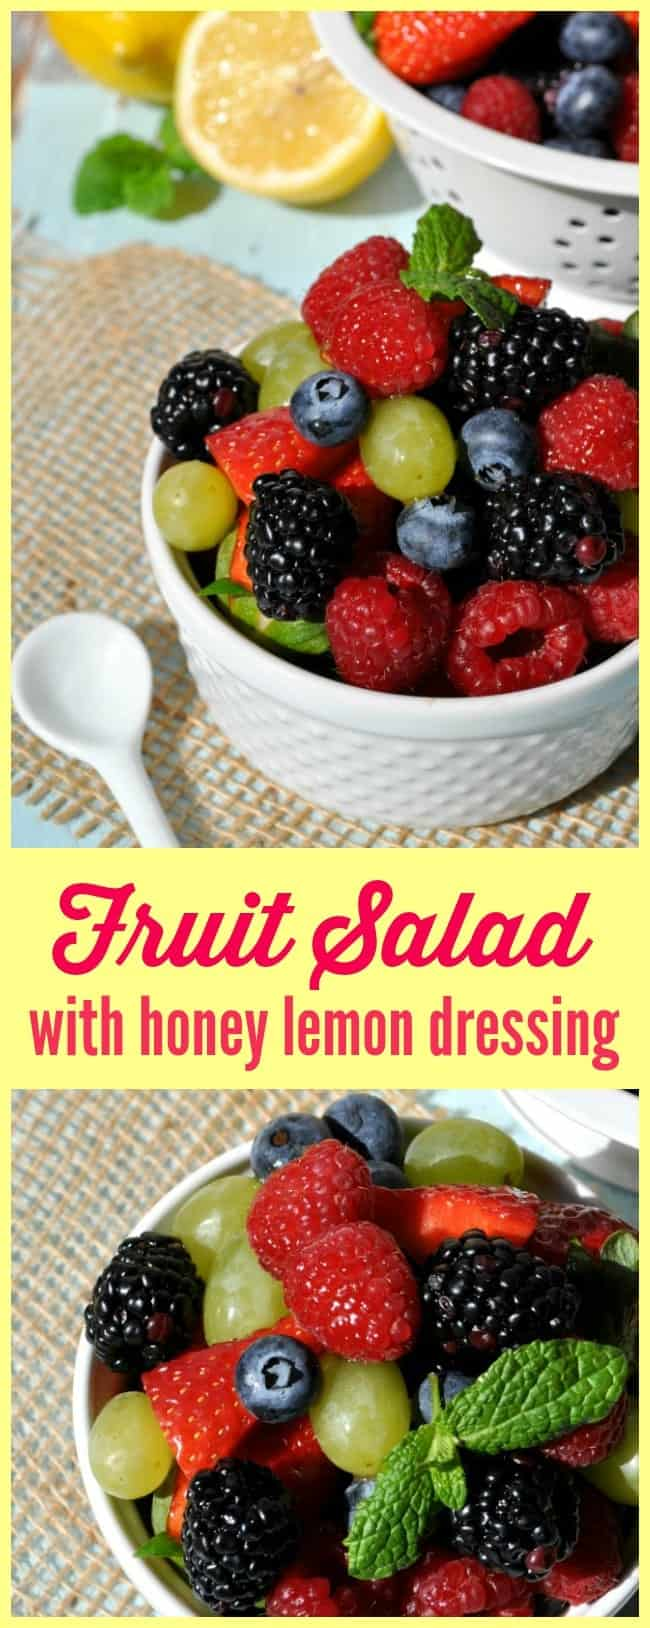 Fruit Salad with Honey Lemon Dressing